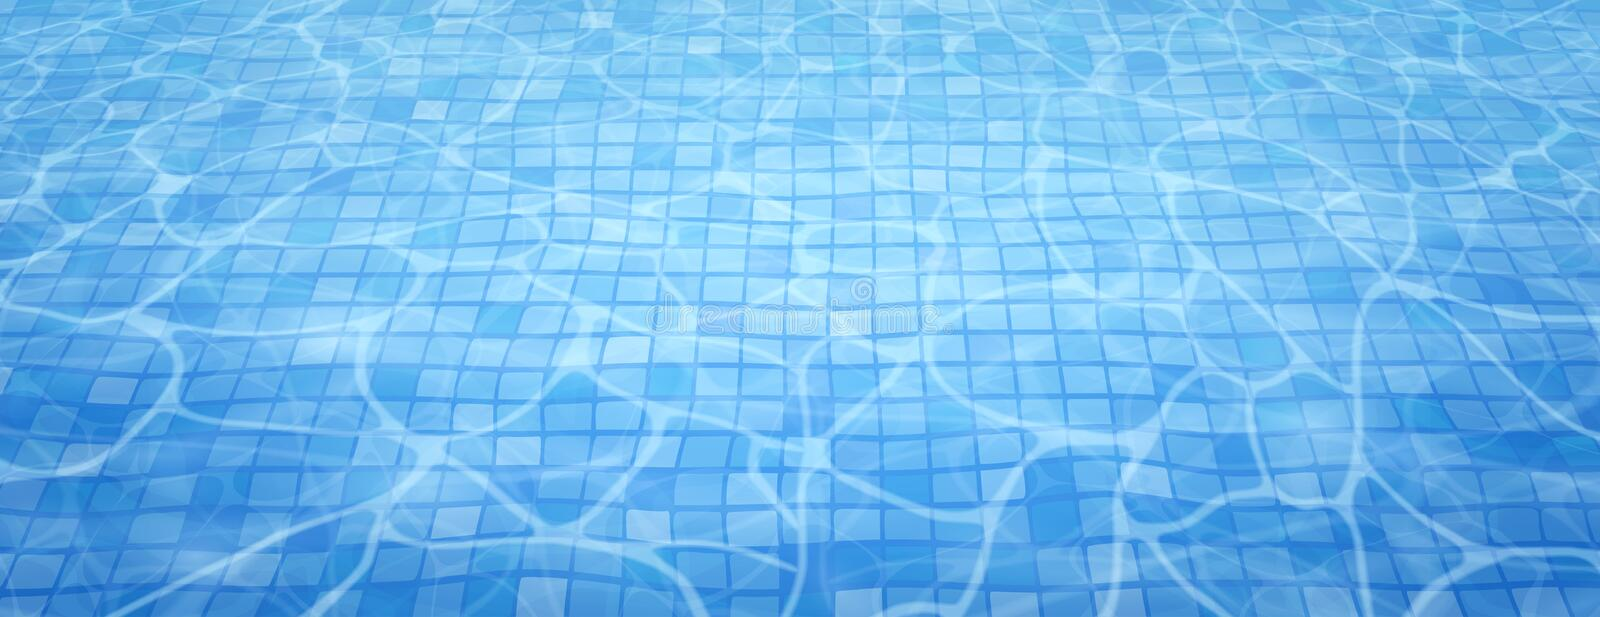 Swimming pool bottom caustics ripple and flow with waves background. Summer background. Texture of water surface royalty free illustration